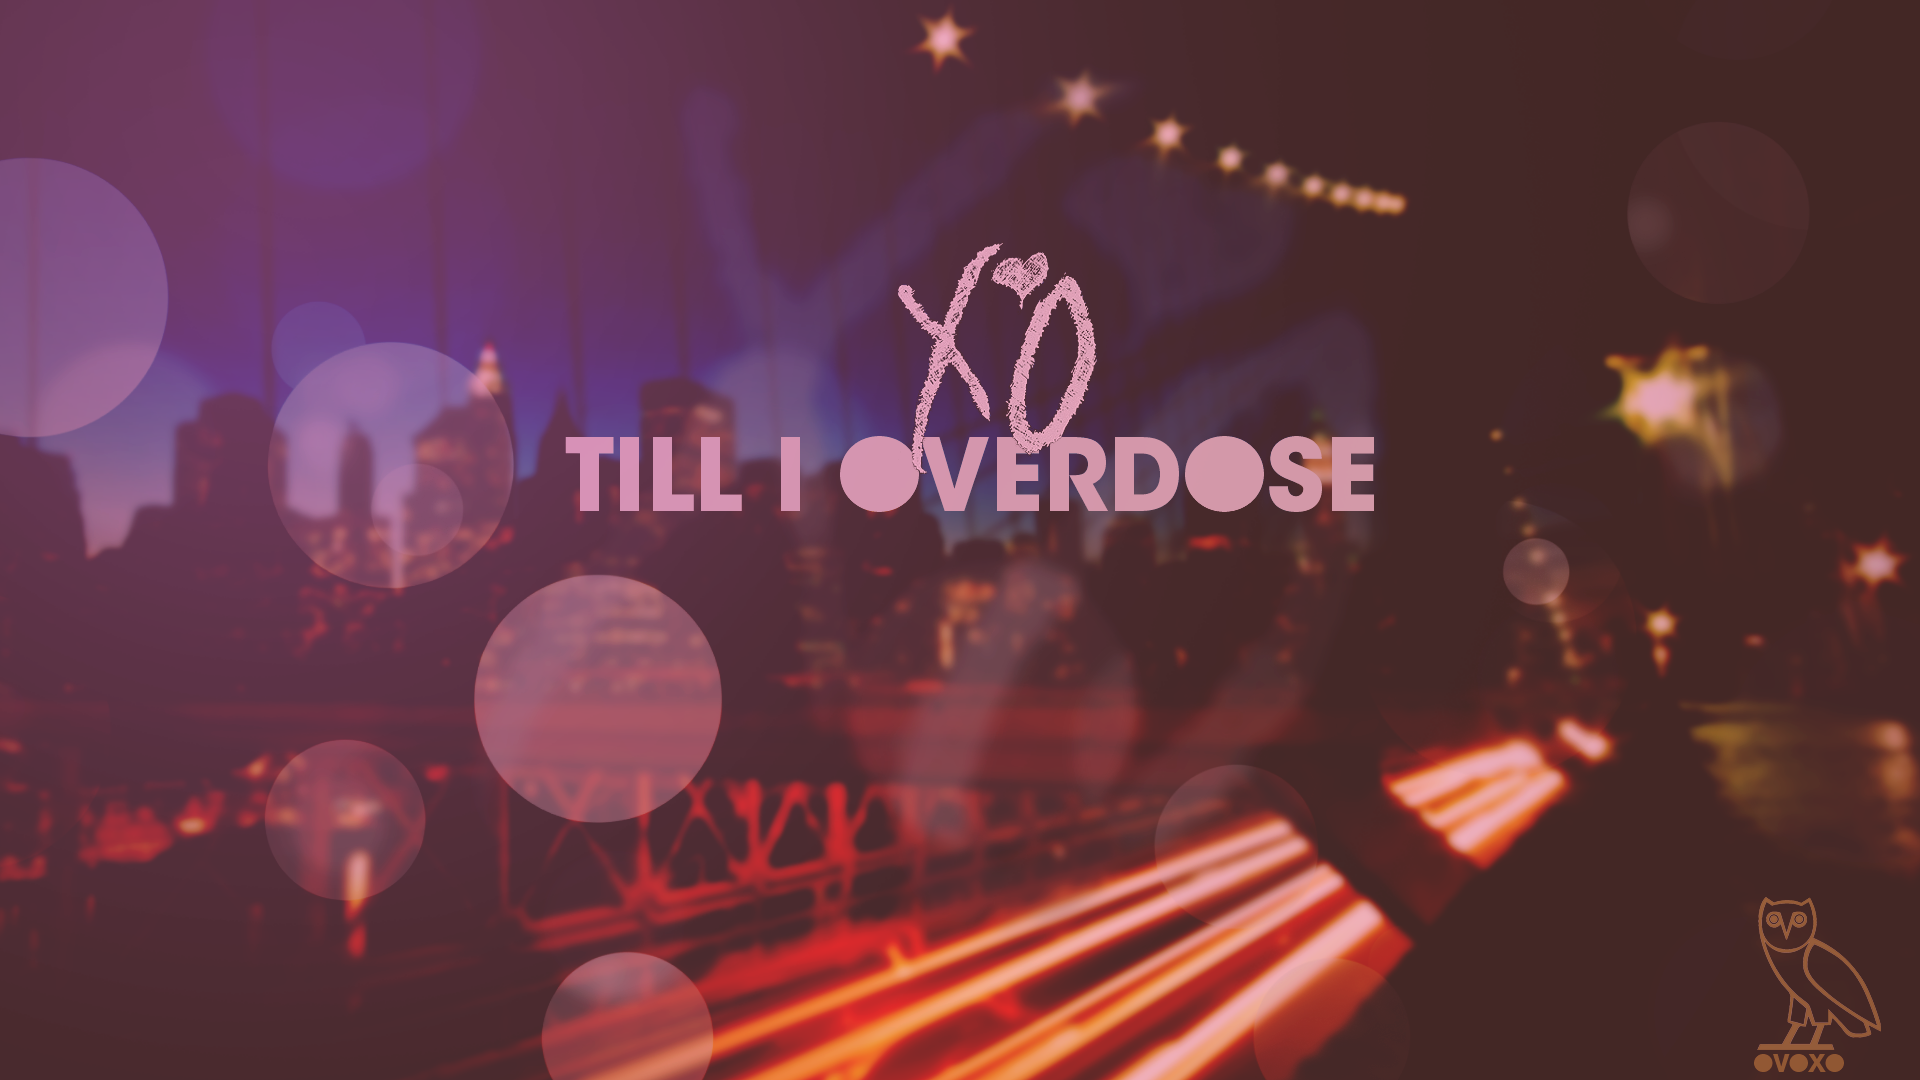 the-weeknd-till-i-overdose-2 pngXo Wallpaper The Weeknd Iphone